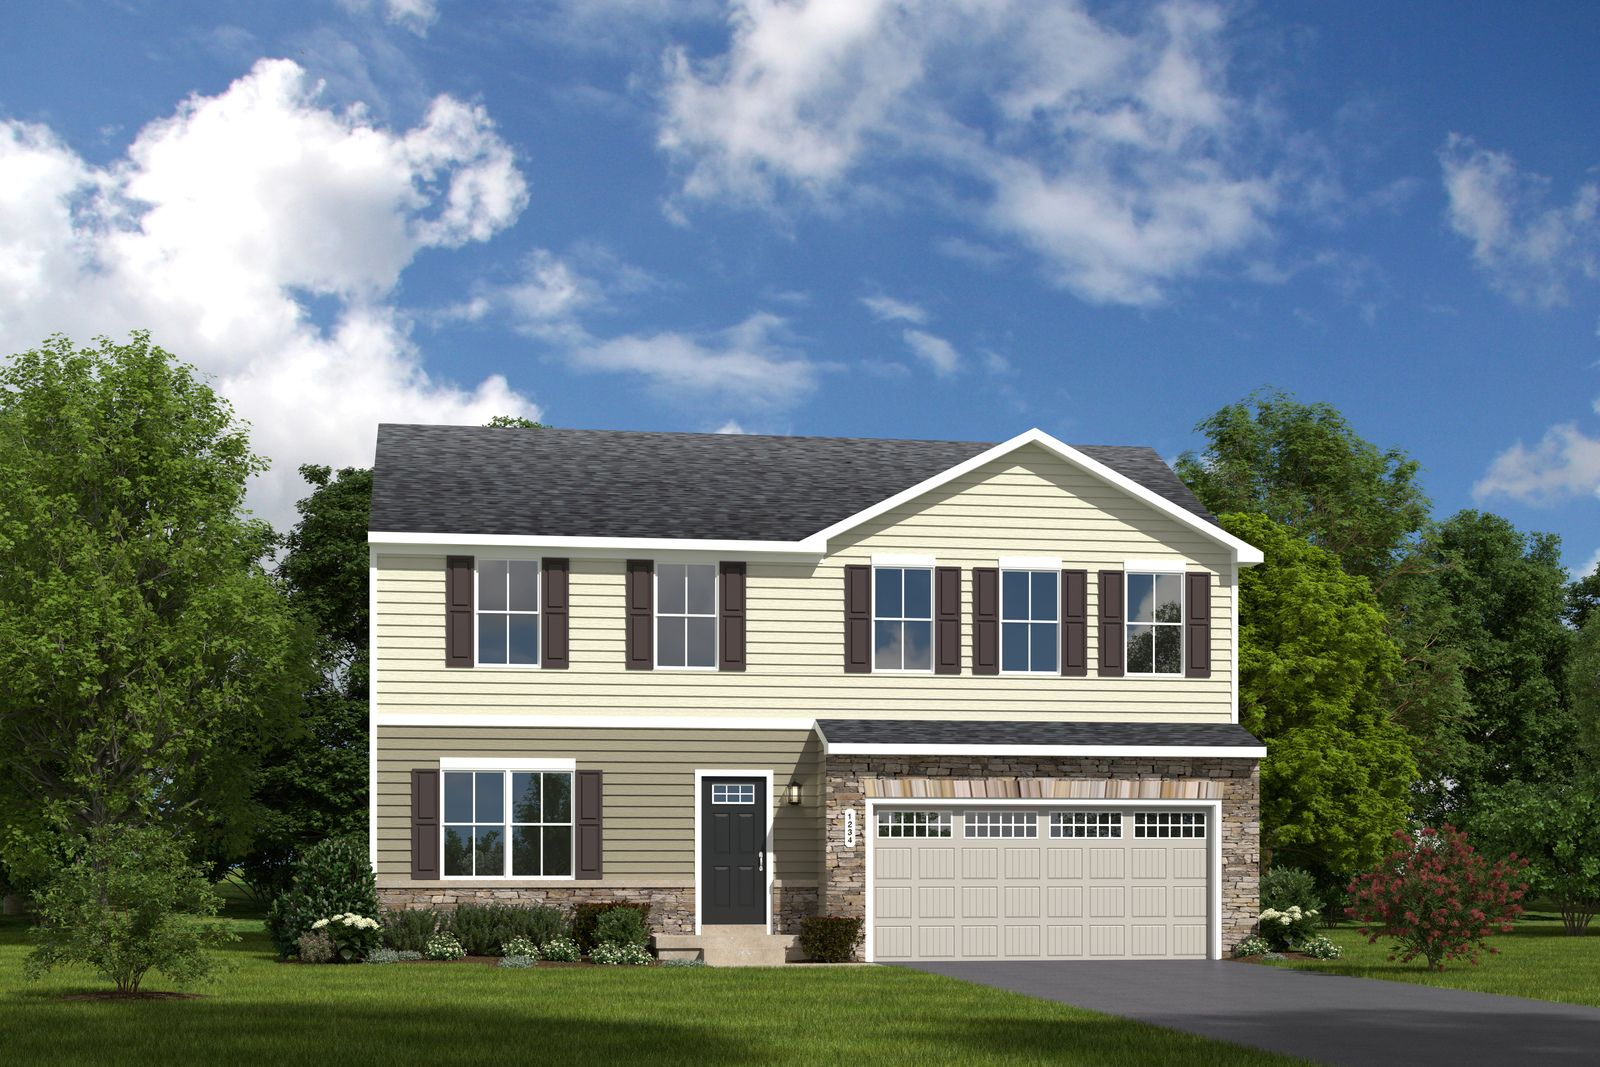 Welcome home to Woodlands at Morrow!:Best kept secret in Little Miami Schools with beautiful rolling homesites and value that can't be beat! All homes include basements. This wooded community is just minutes from I-71!